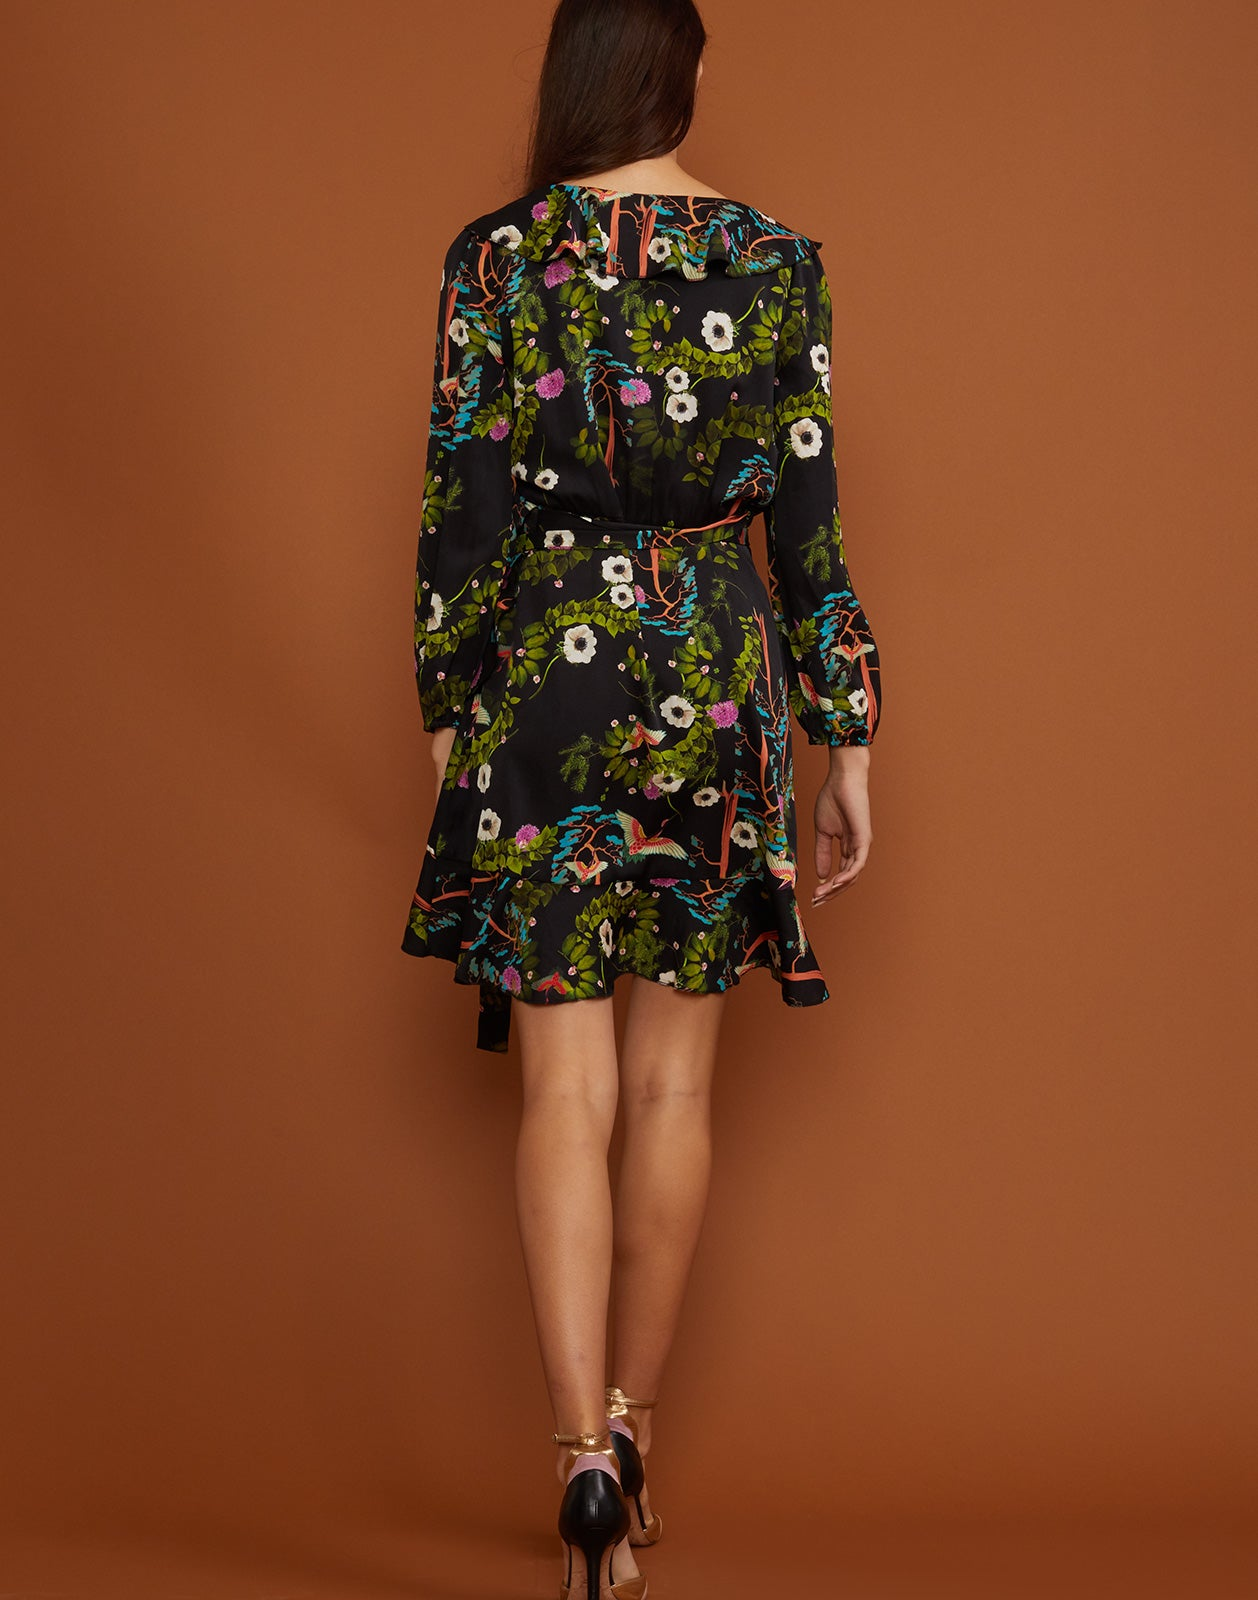 Back view of the vibrant dark floral wrap dress with waist tie.